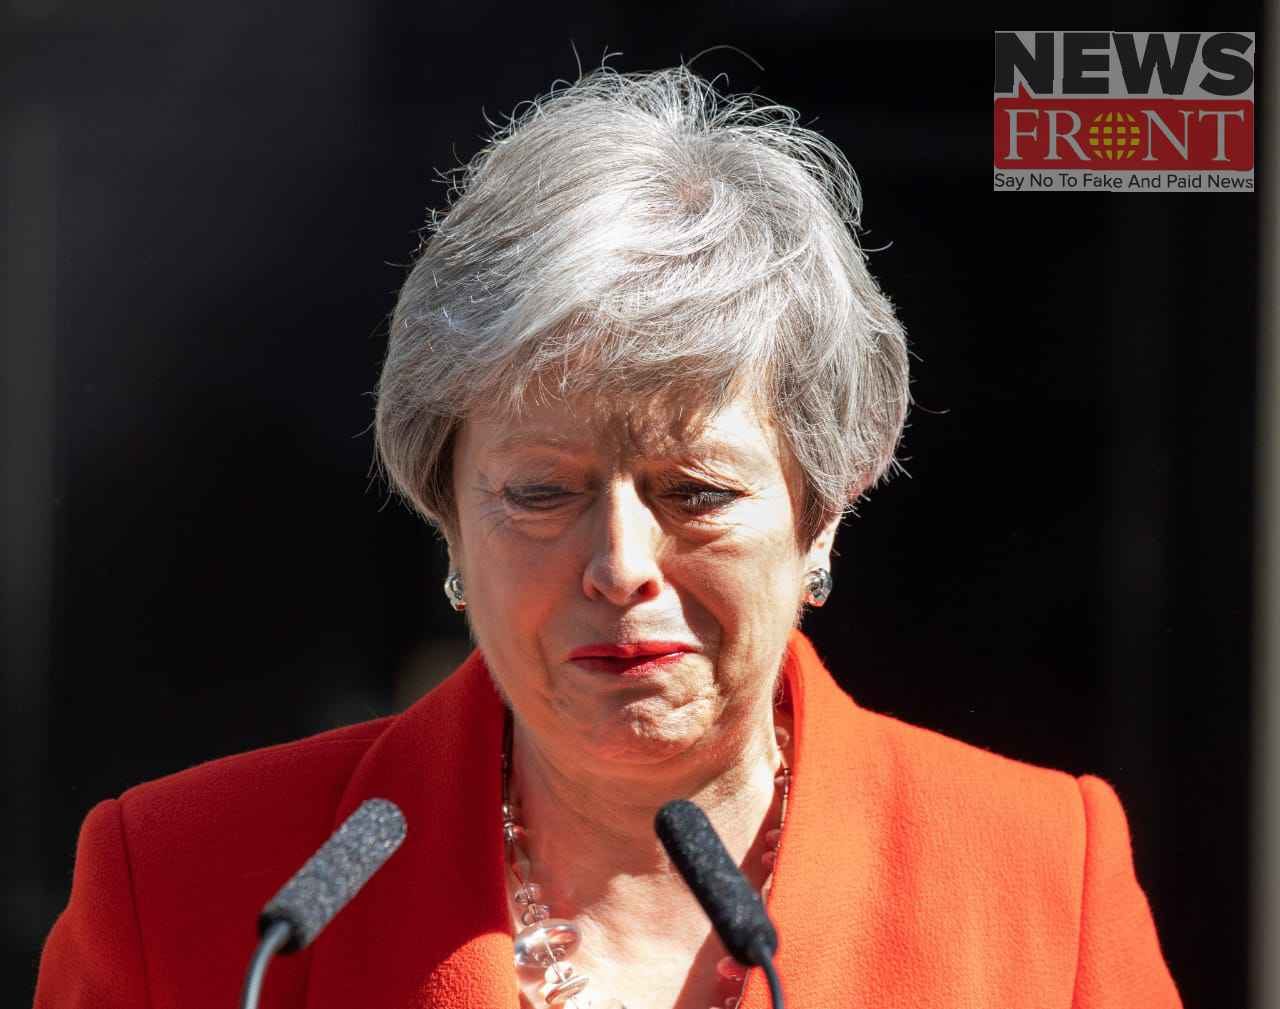 Theresa announced the decision to resign from the Conservative party leadership 2